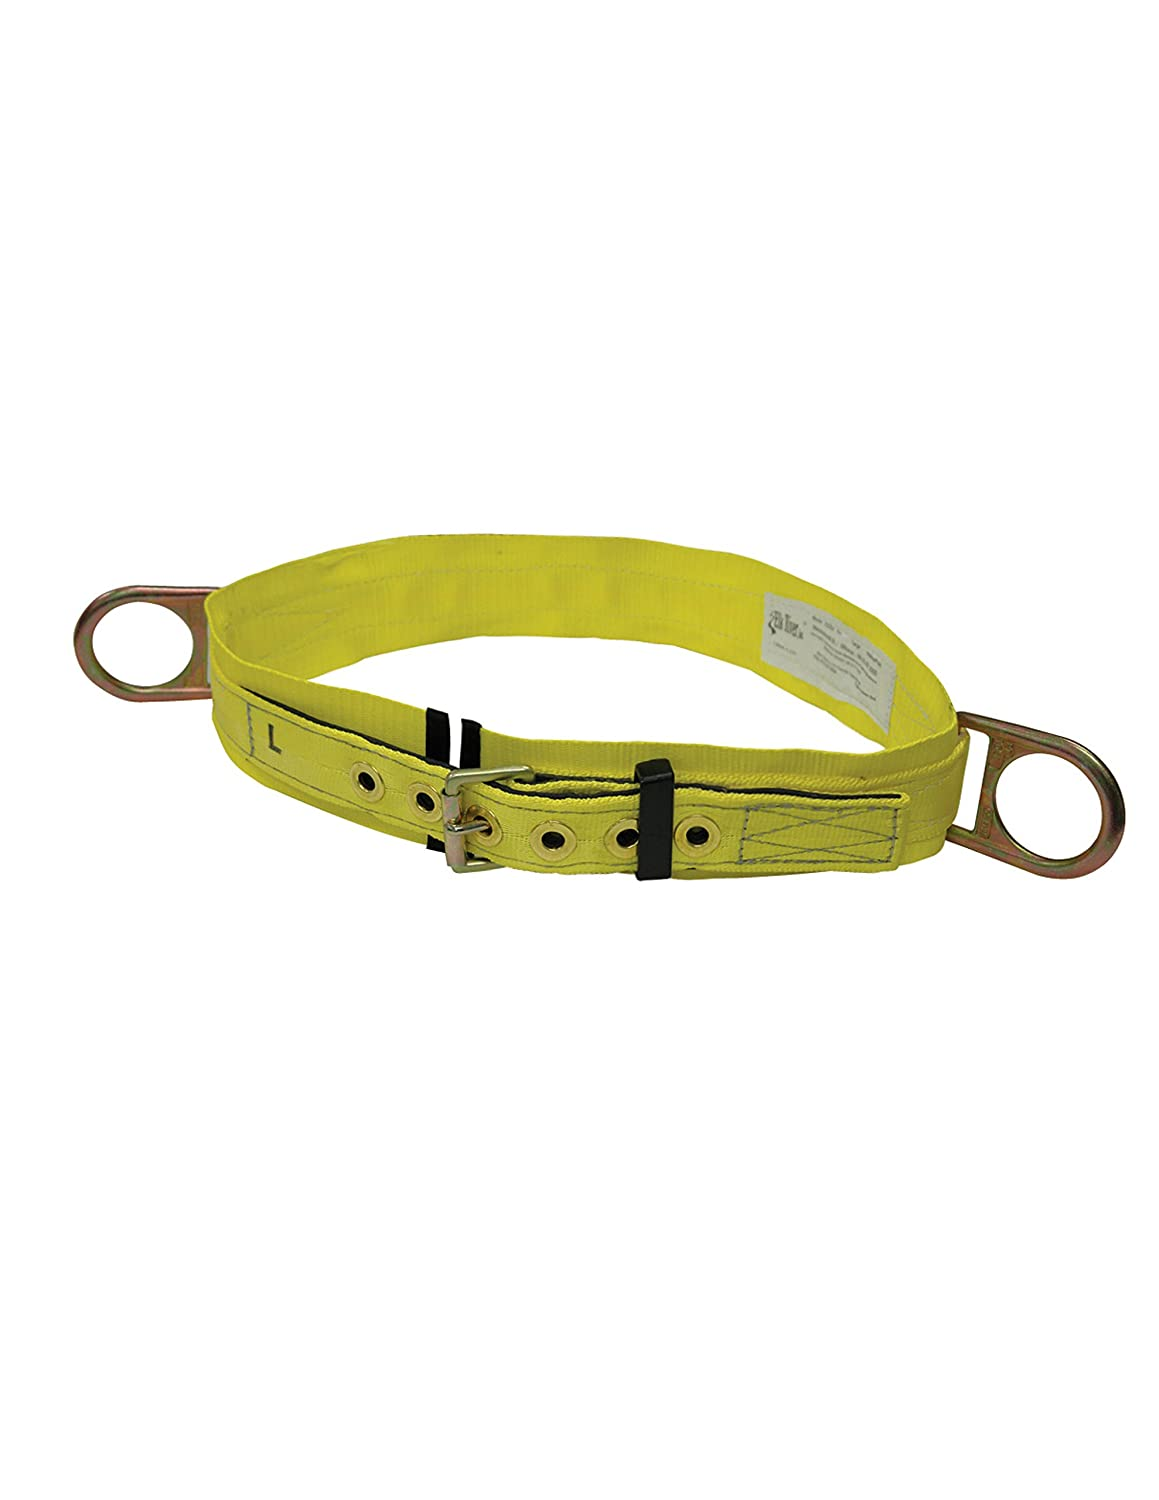 Elk River 03202 Nylon Web Double D Body Work Belt with 3' Pad and 2 D-Rings, Medium Inc